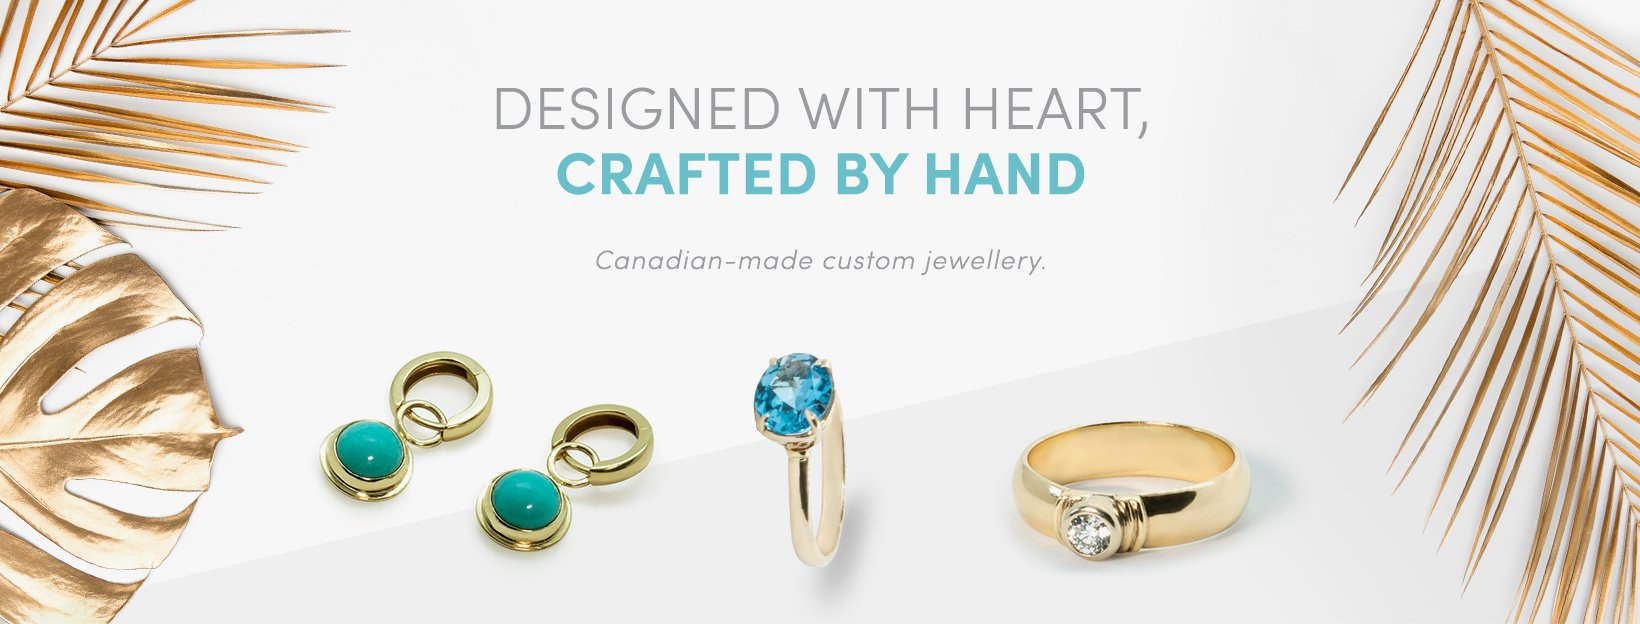 Designed With Heart, Crafted By Hand